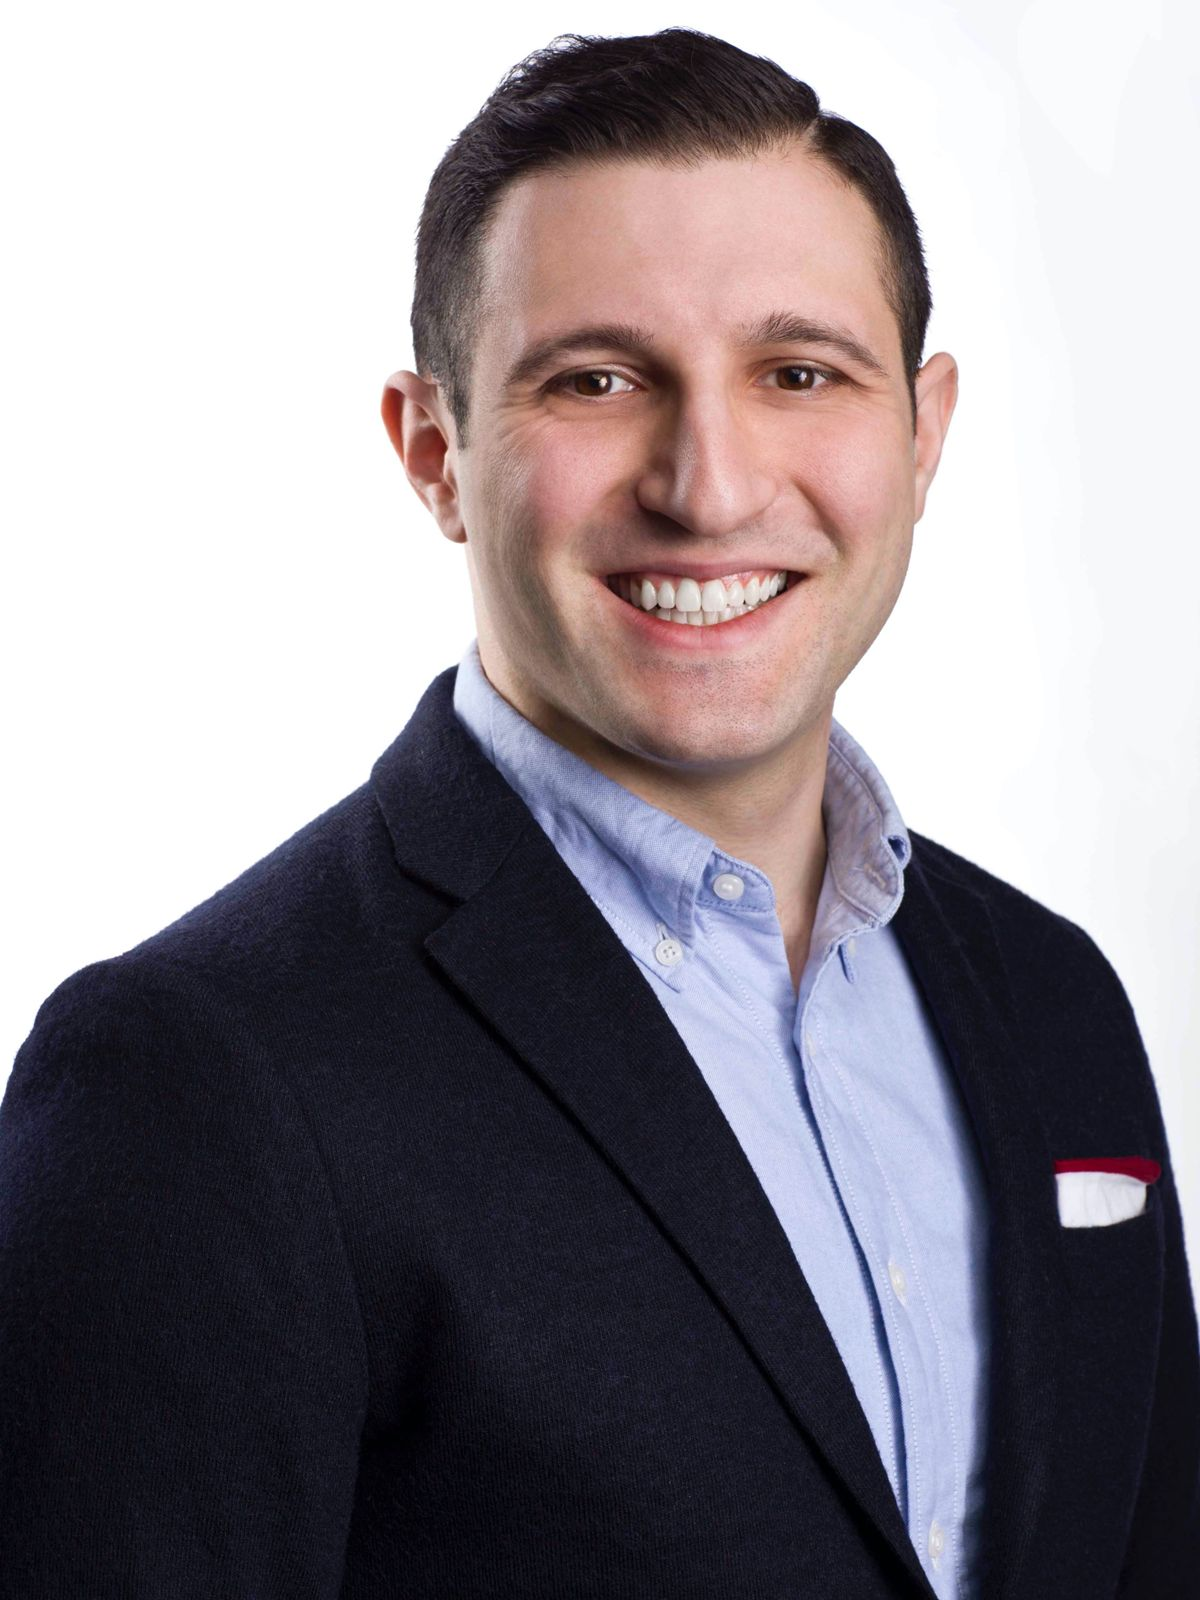 dna Communications Hires Mike Rosich as EVP and GM of Its New York Office, dna Communications